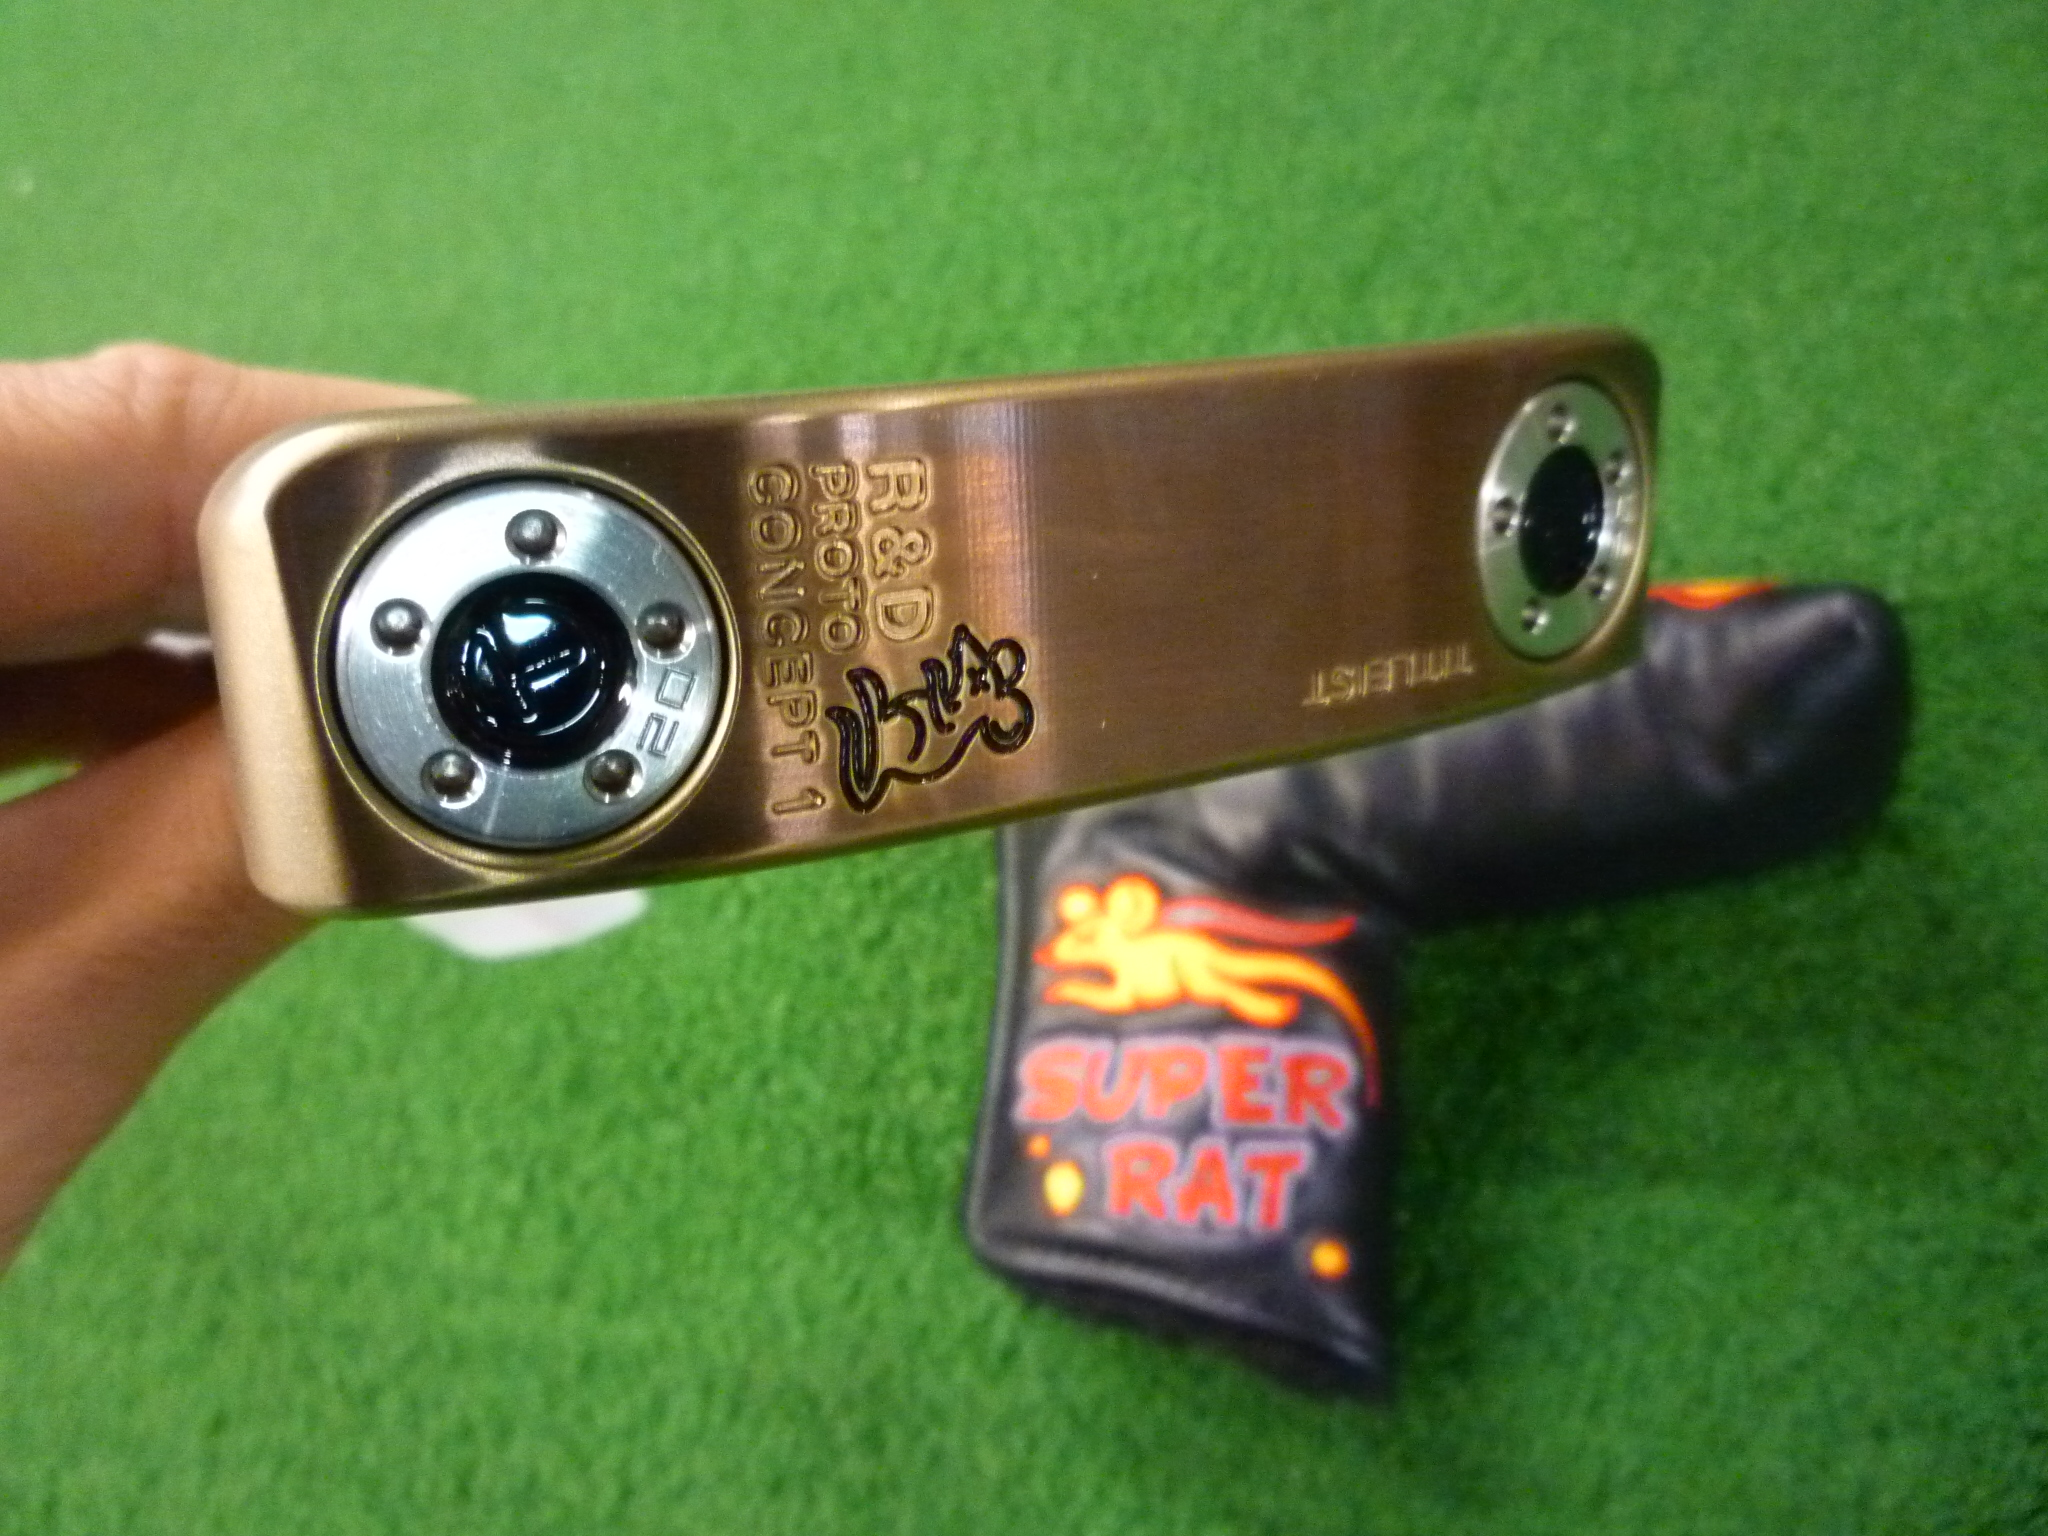 2011 TOUR RAT Scotty Cameron R&D Proto Concept 1 *PICS